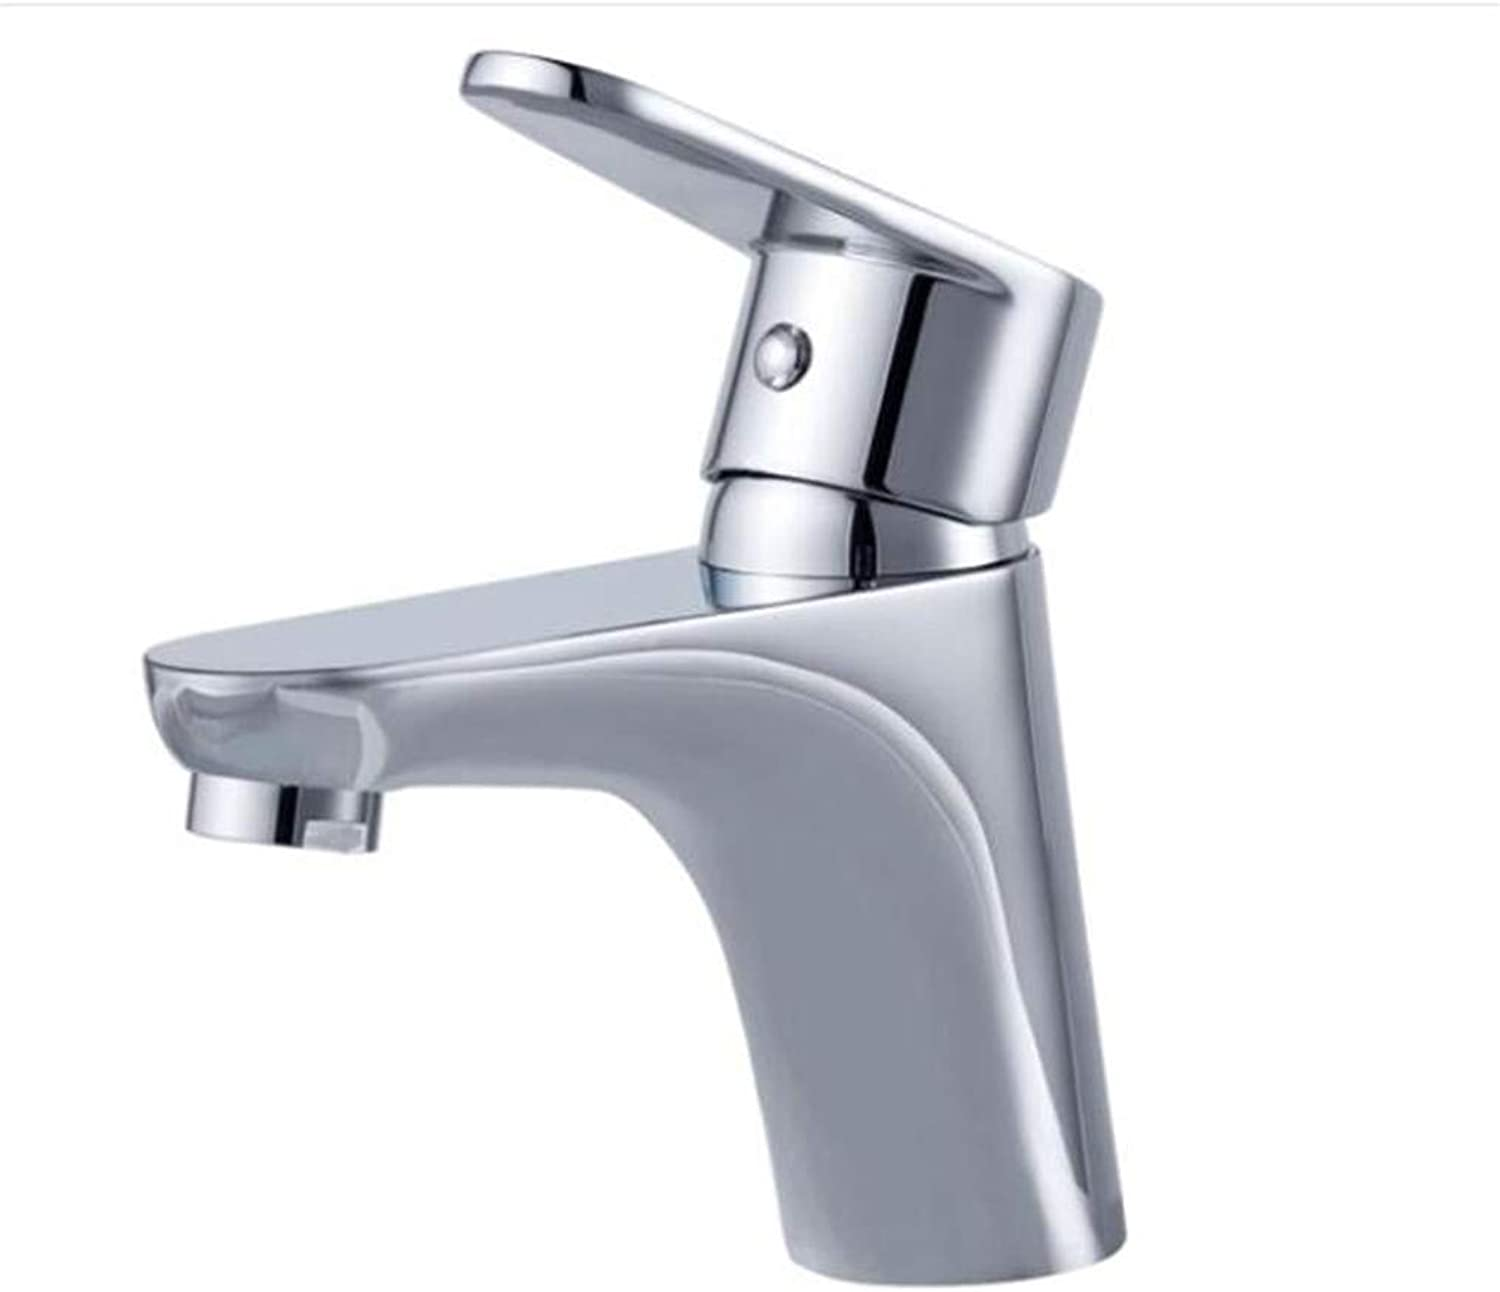 Bathroom Sink Basin Lever Mixer Tap Face Basin Faucet Copper Single Hole Single Hot and Cold Table Basin Faucet